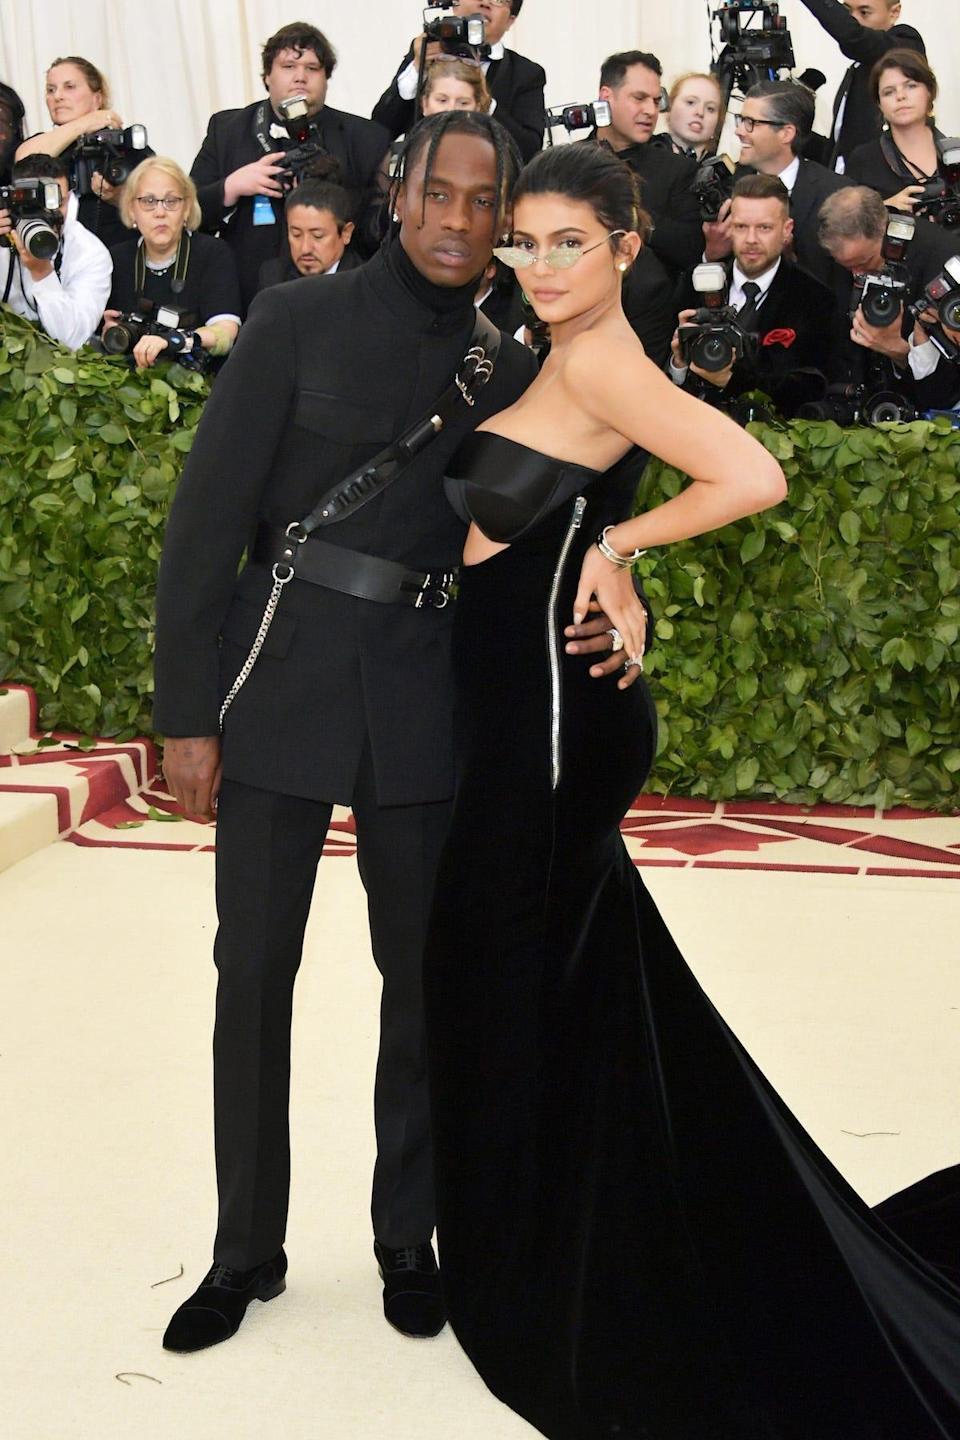 Travis Scott and Kylie Jenner attend the Met Gala 2018